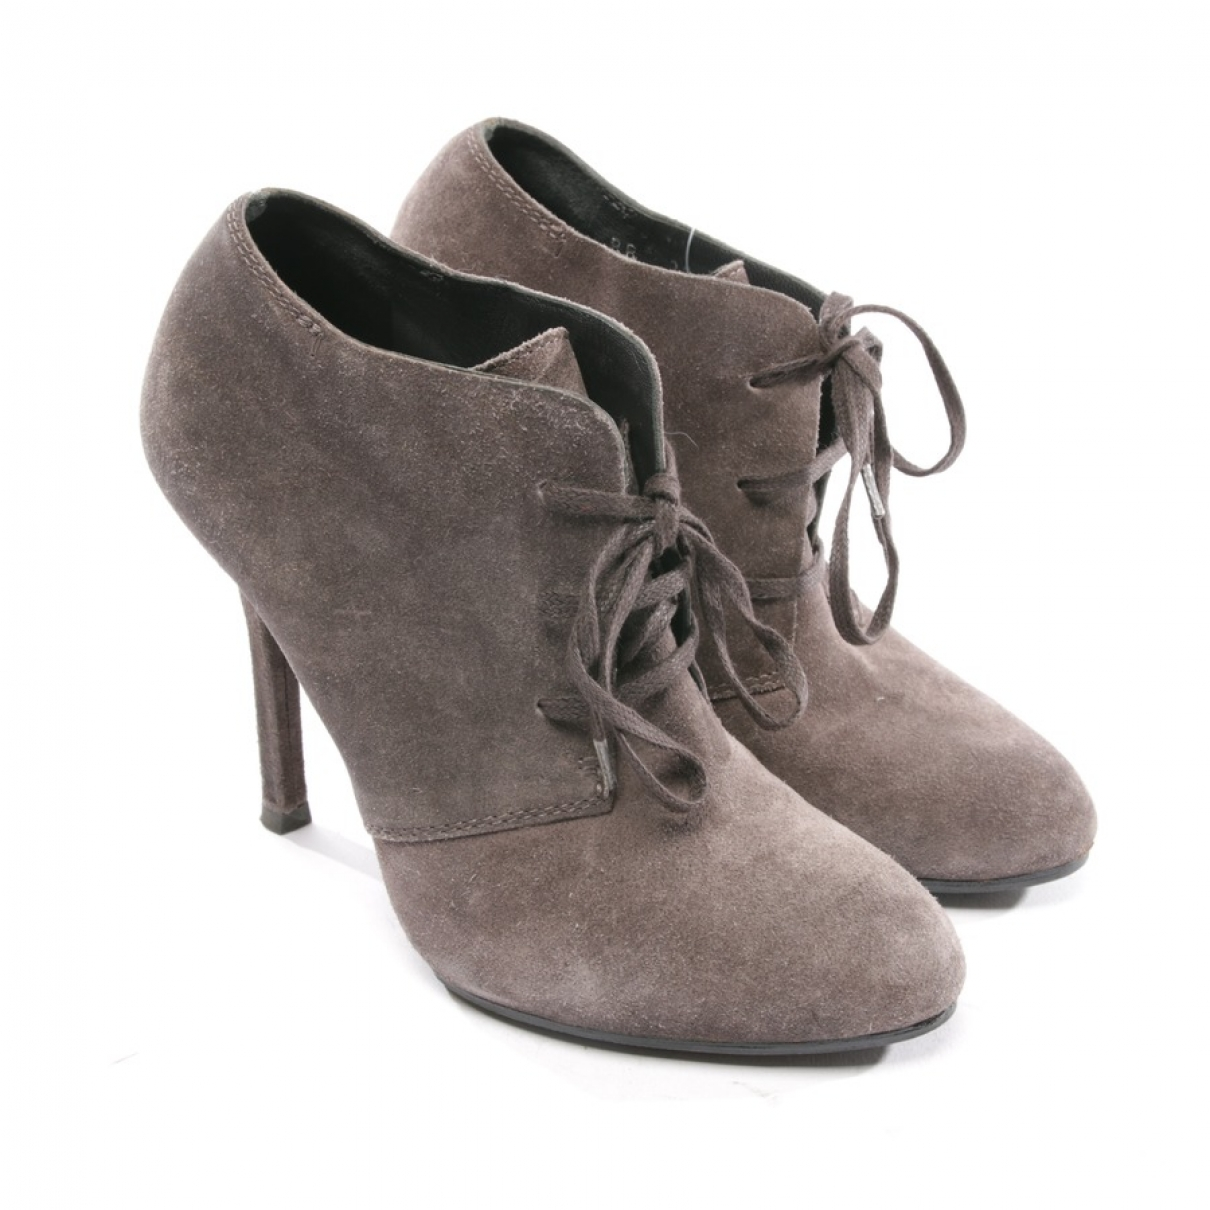 Yves Saint Laurent \N Grey Suede Ankle boots for Women 36 EU